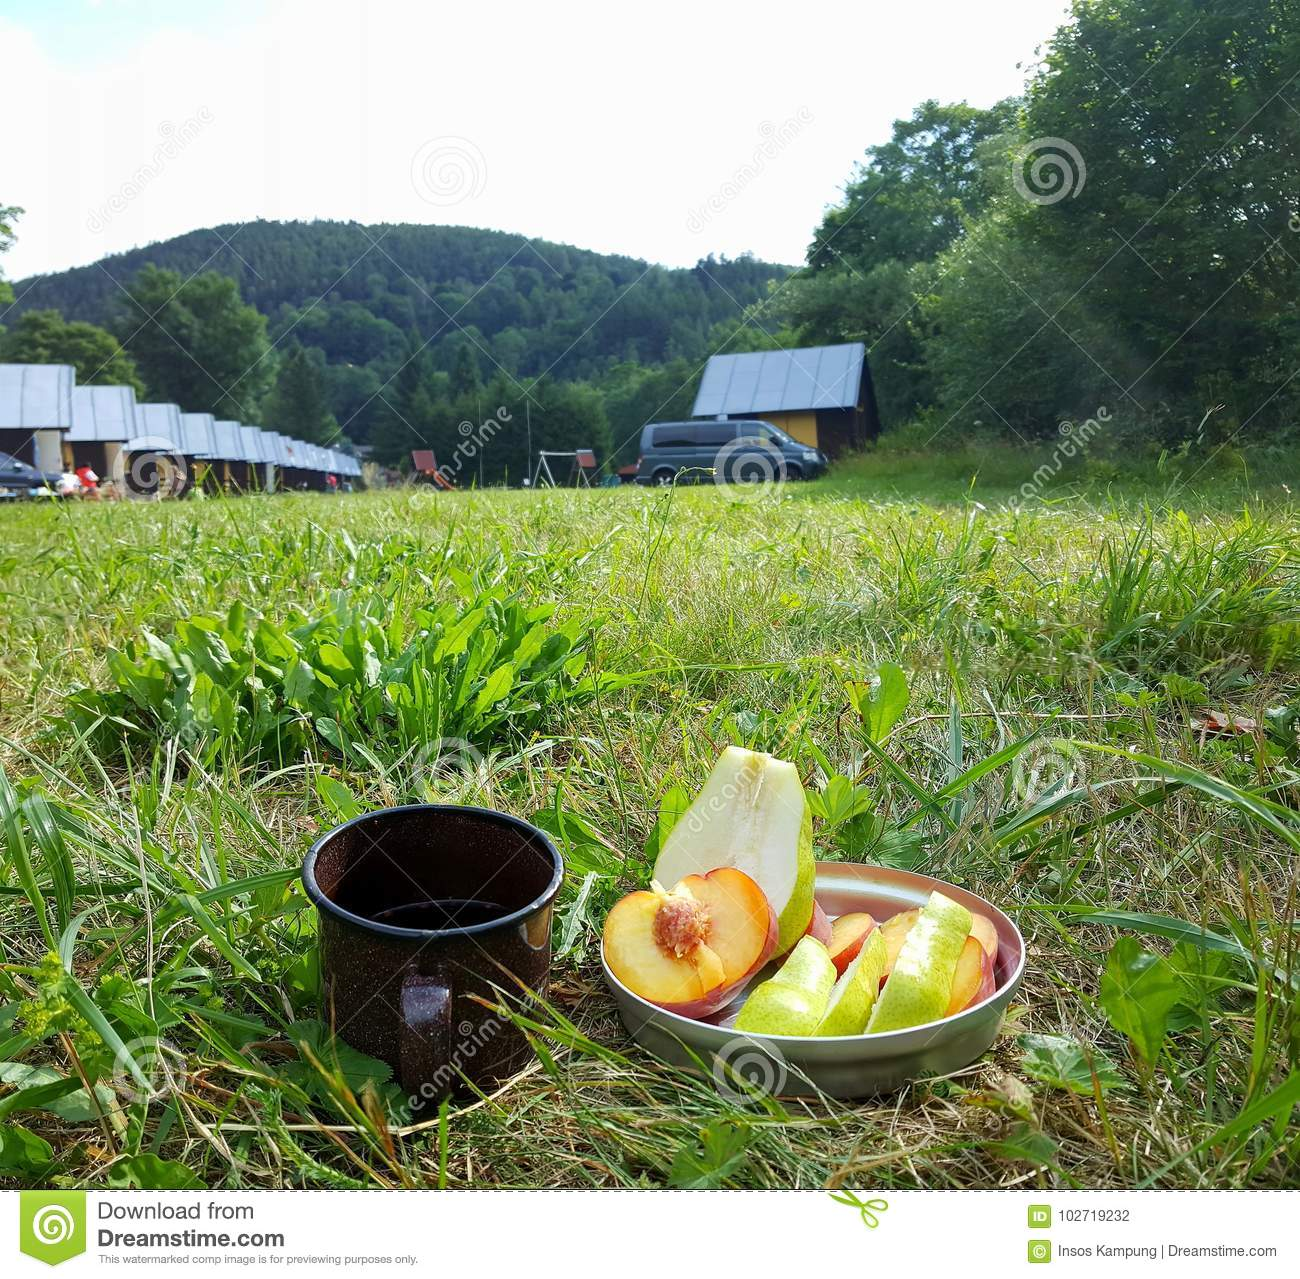 Breakfast at the Camp Site